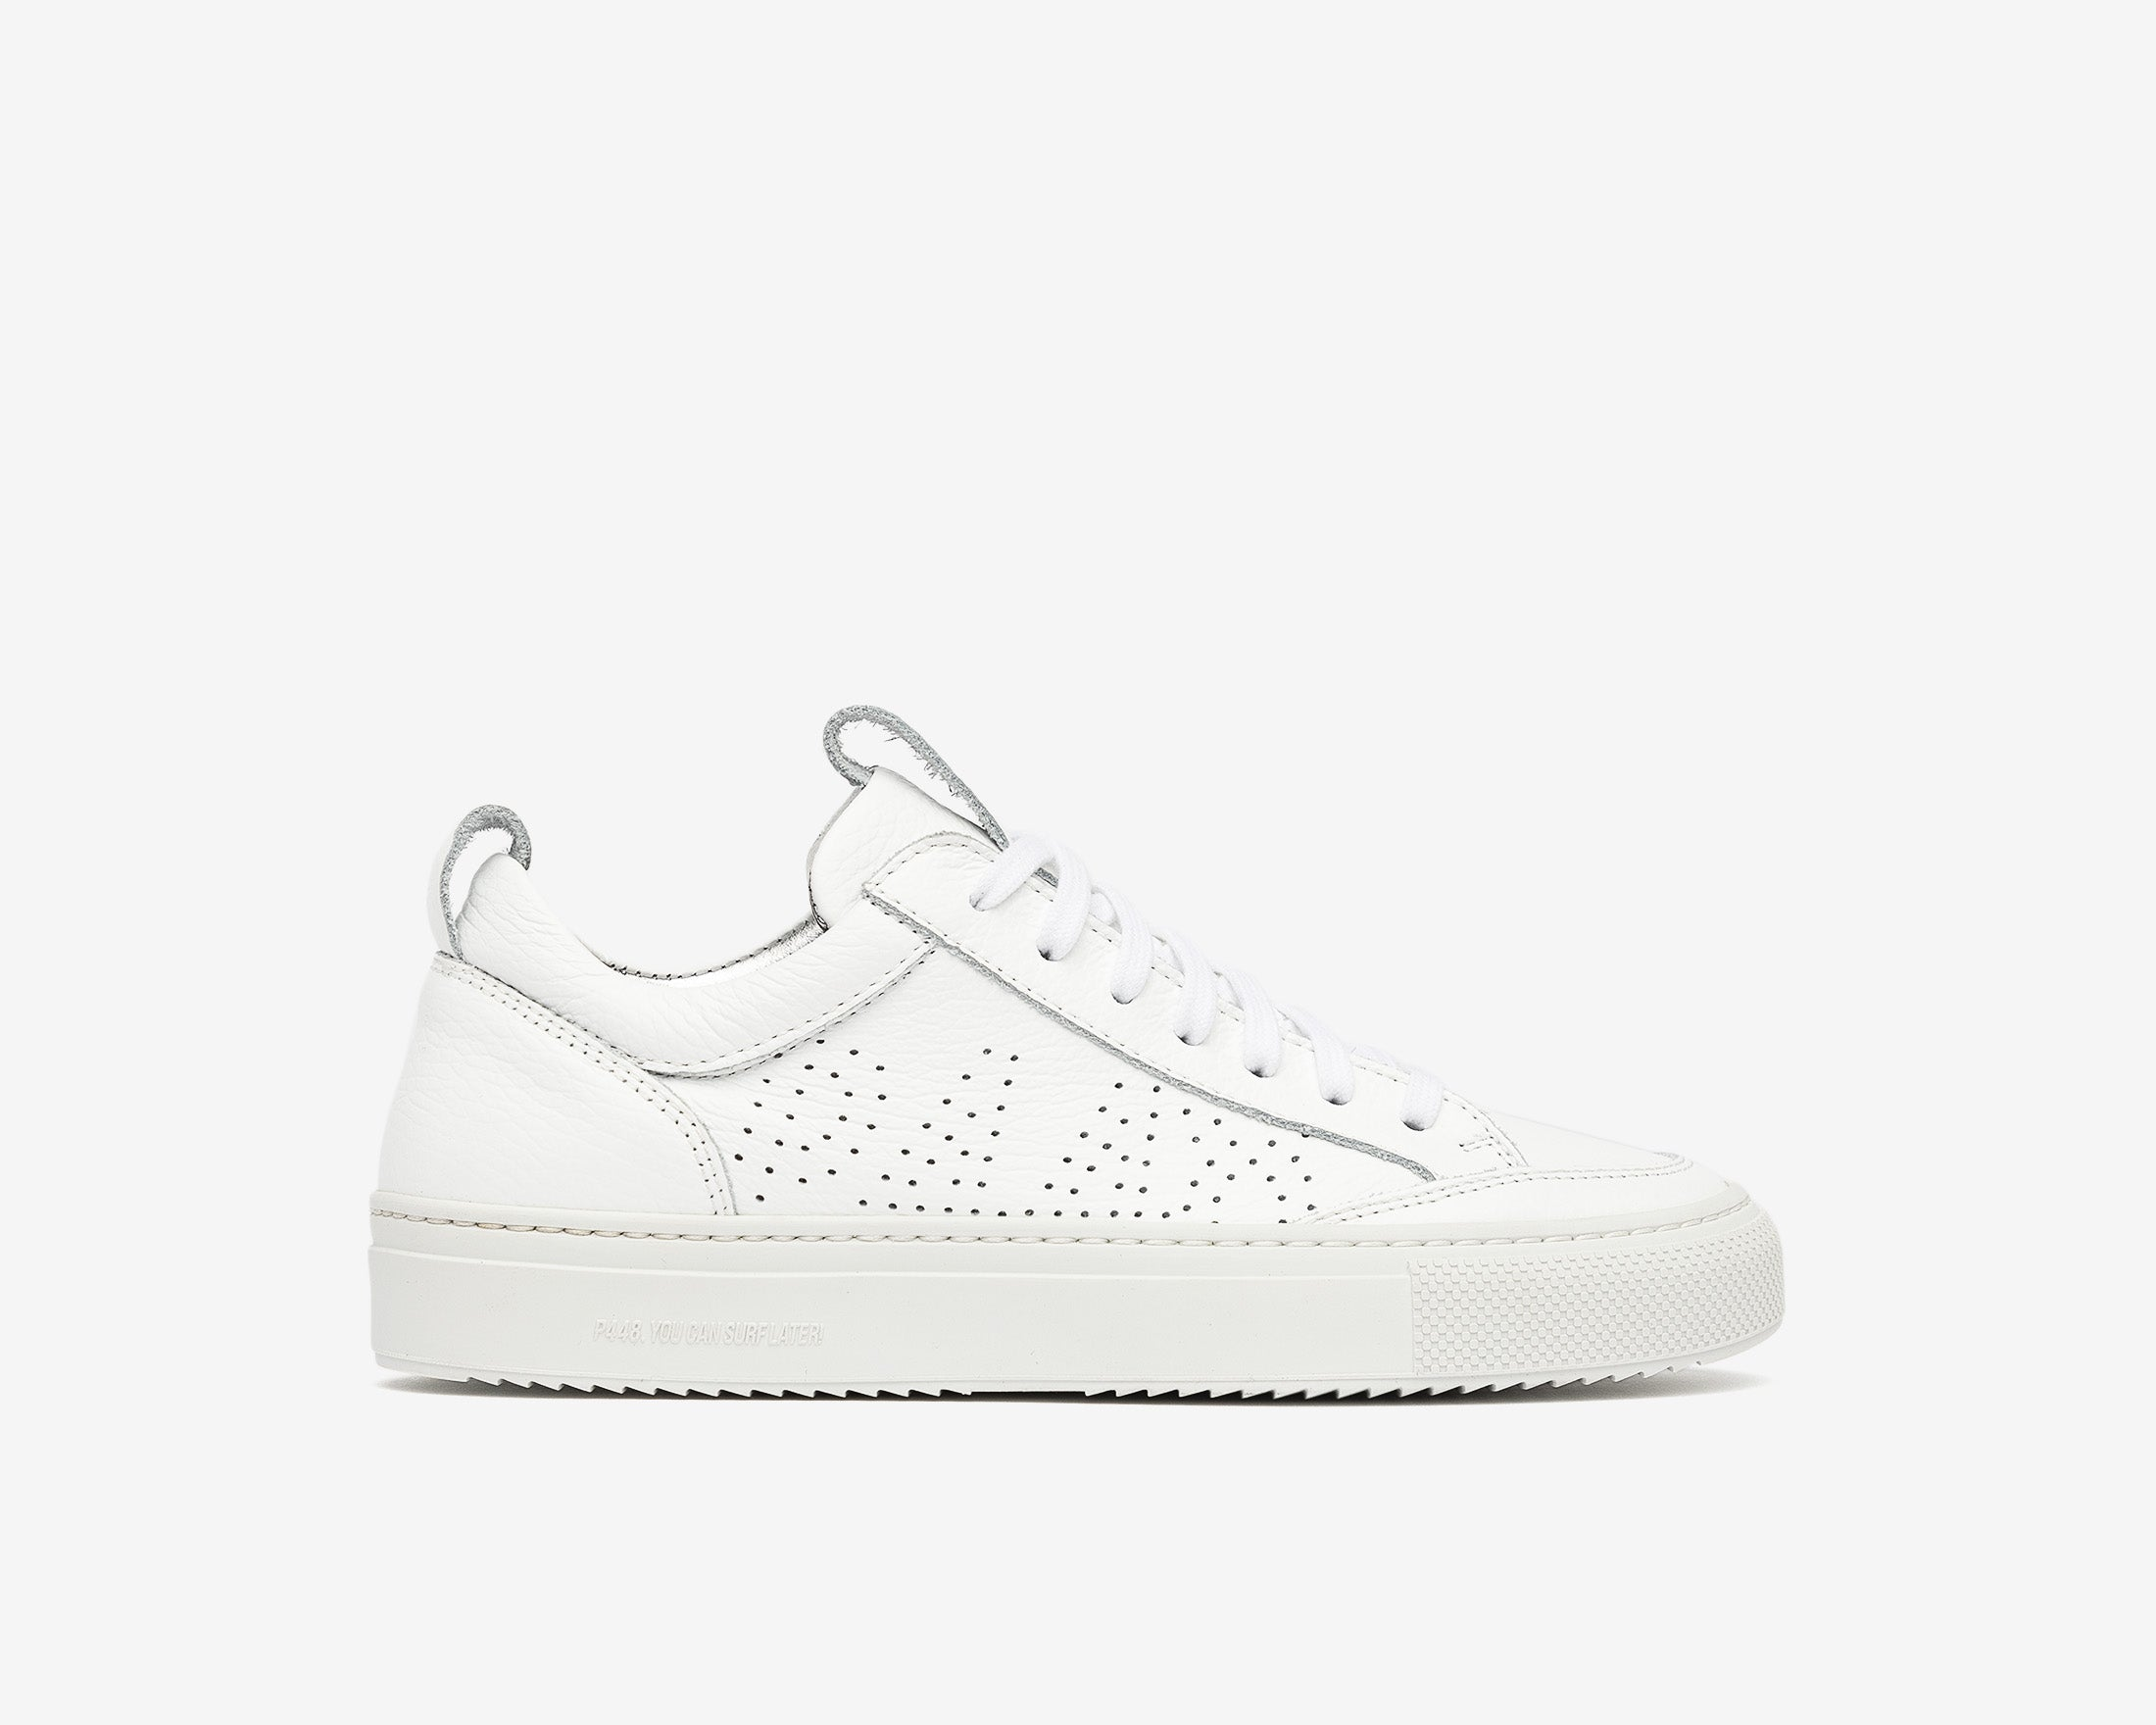 Soho Pull-on Sneaker in White - Profile